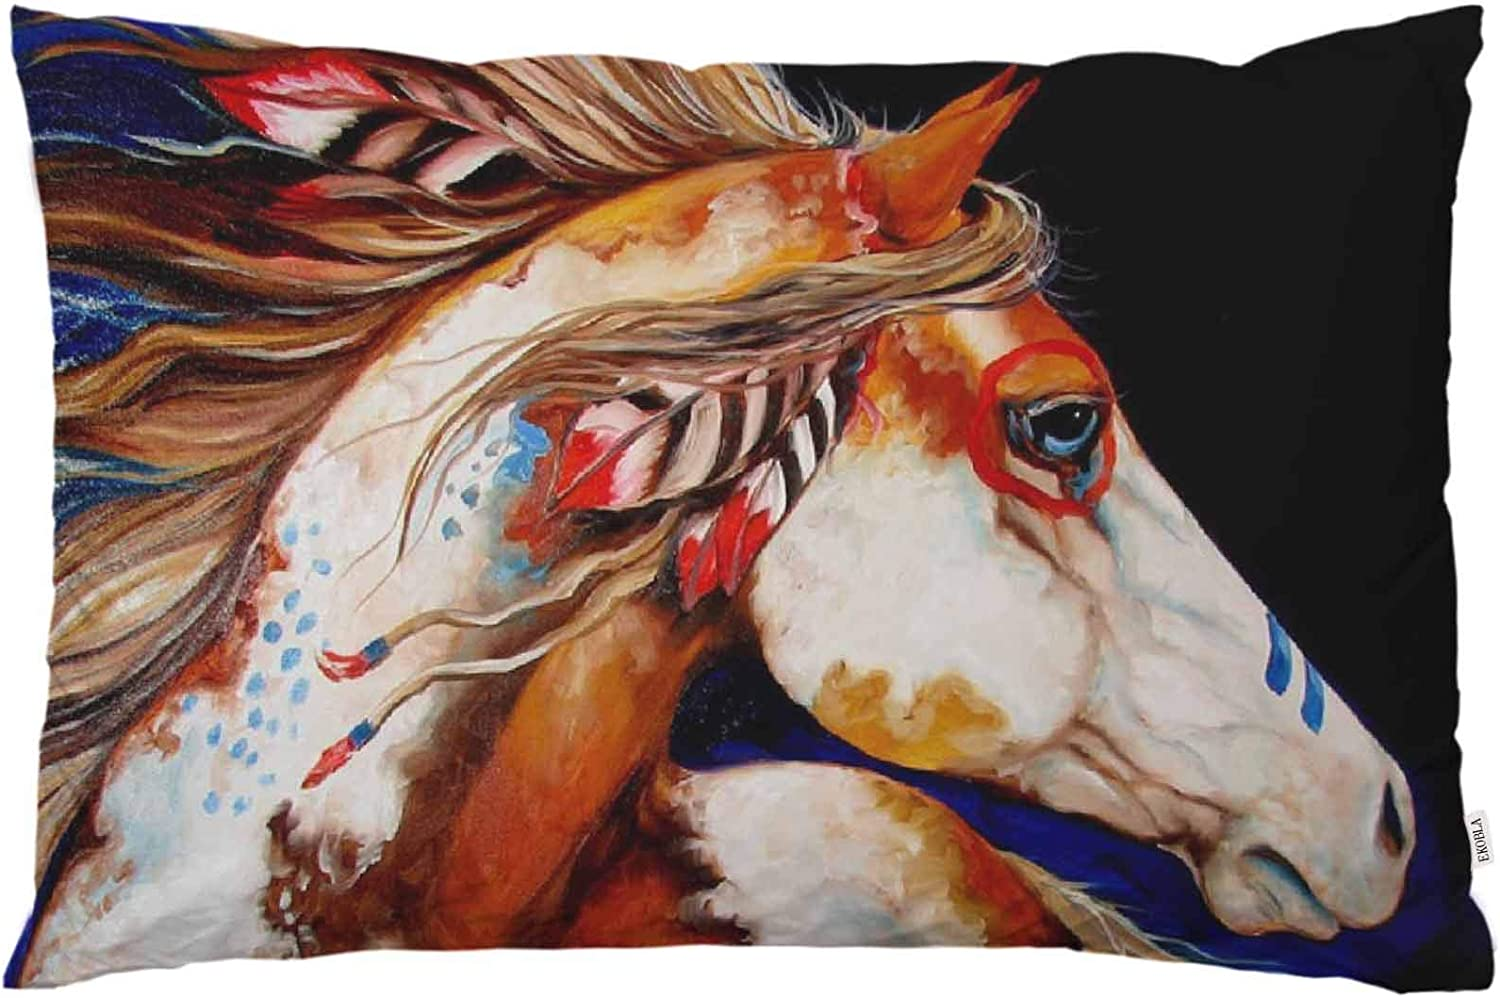 EKOBLA Throw Pillow Cover Indian Horse Oil Painting Feather Tribal Design Native American Style Cool Animal Decor Lumbar Pillow Case Cushion for Sofa Couch Bed Standard Queen Size 20x30 Inch